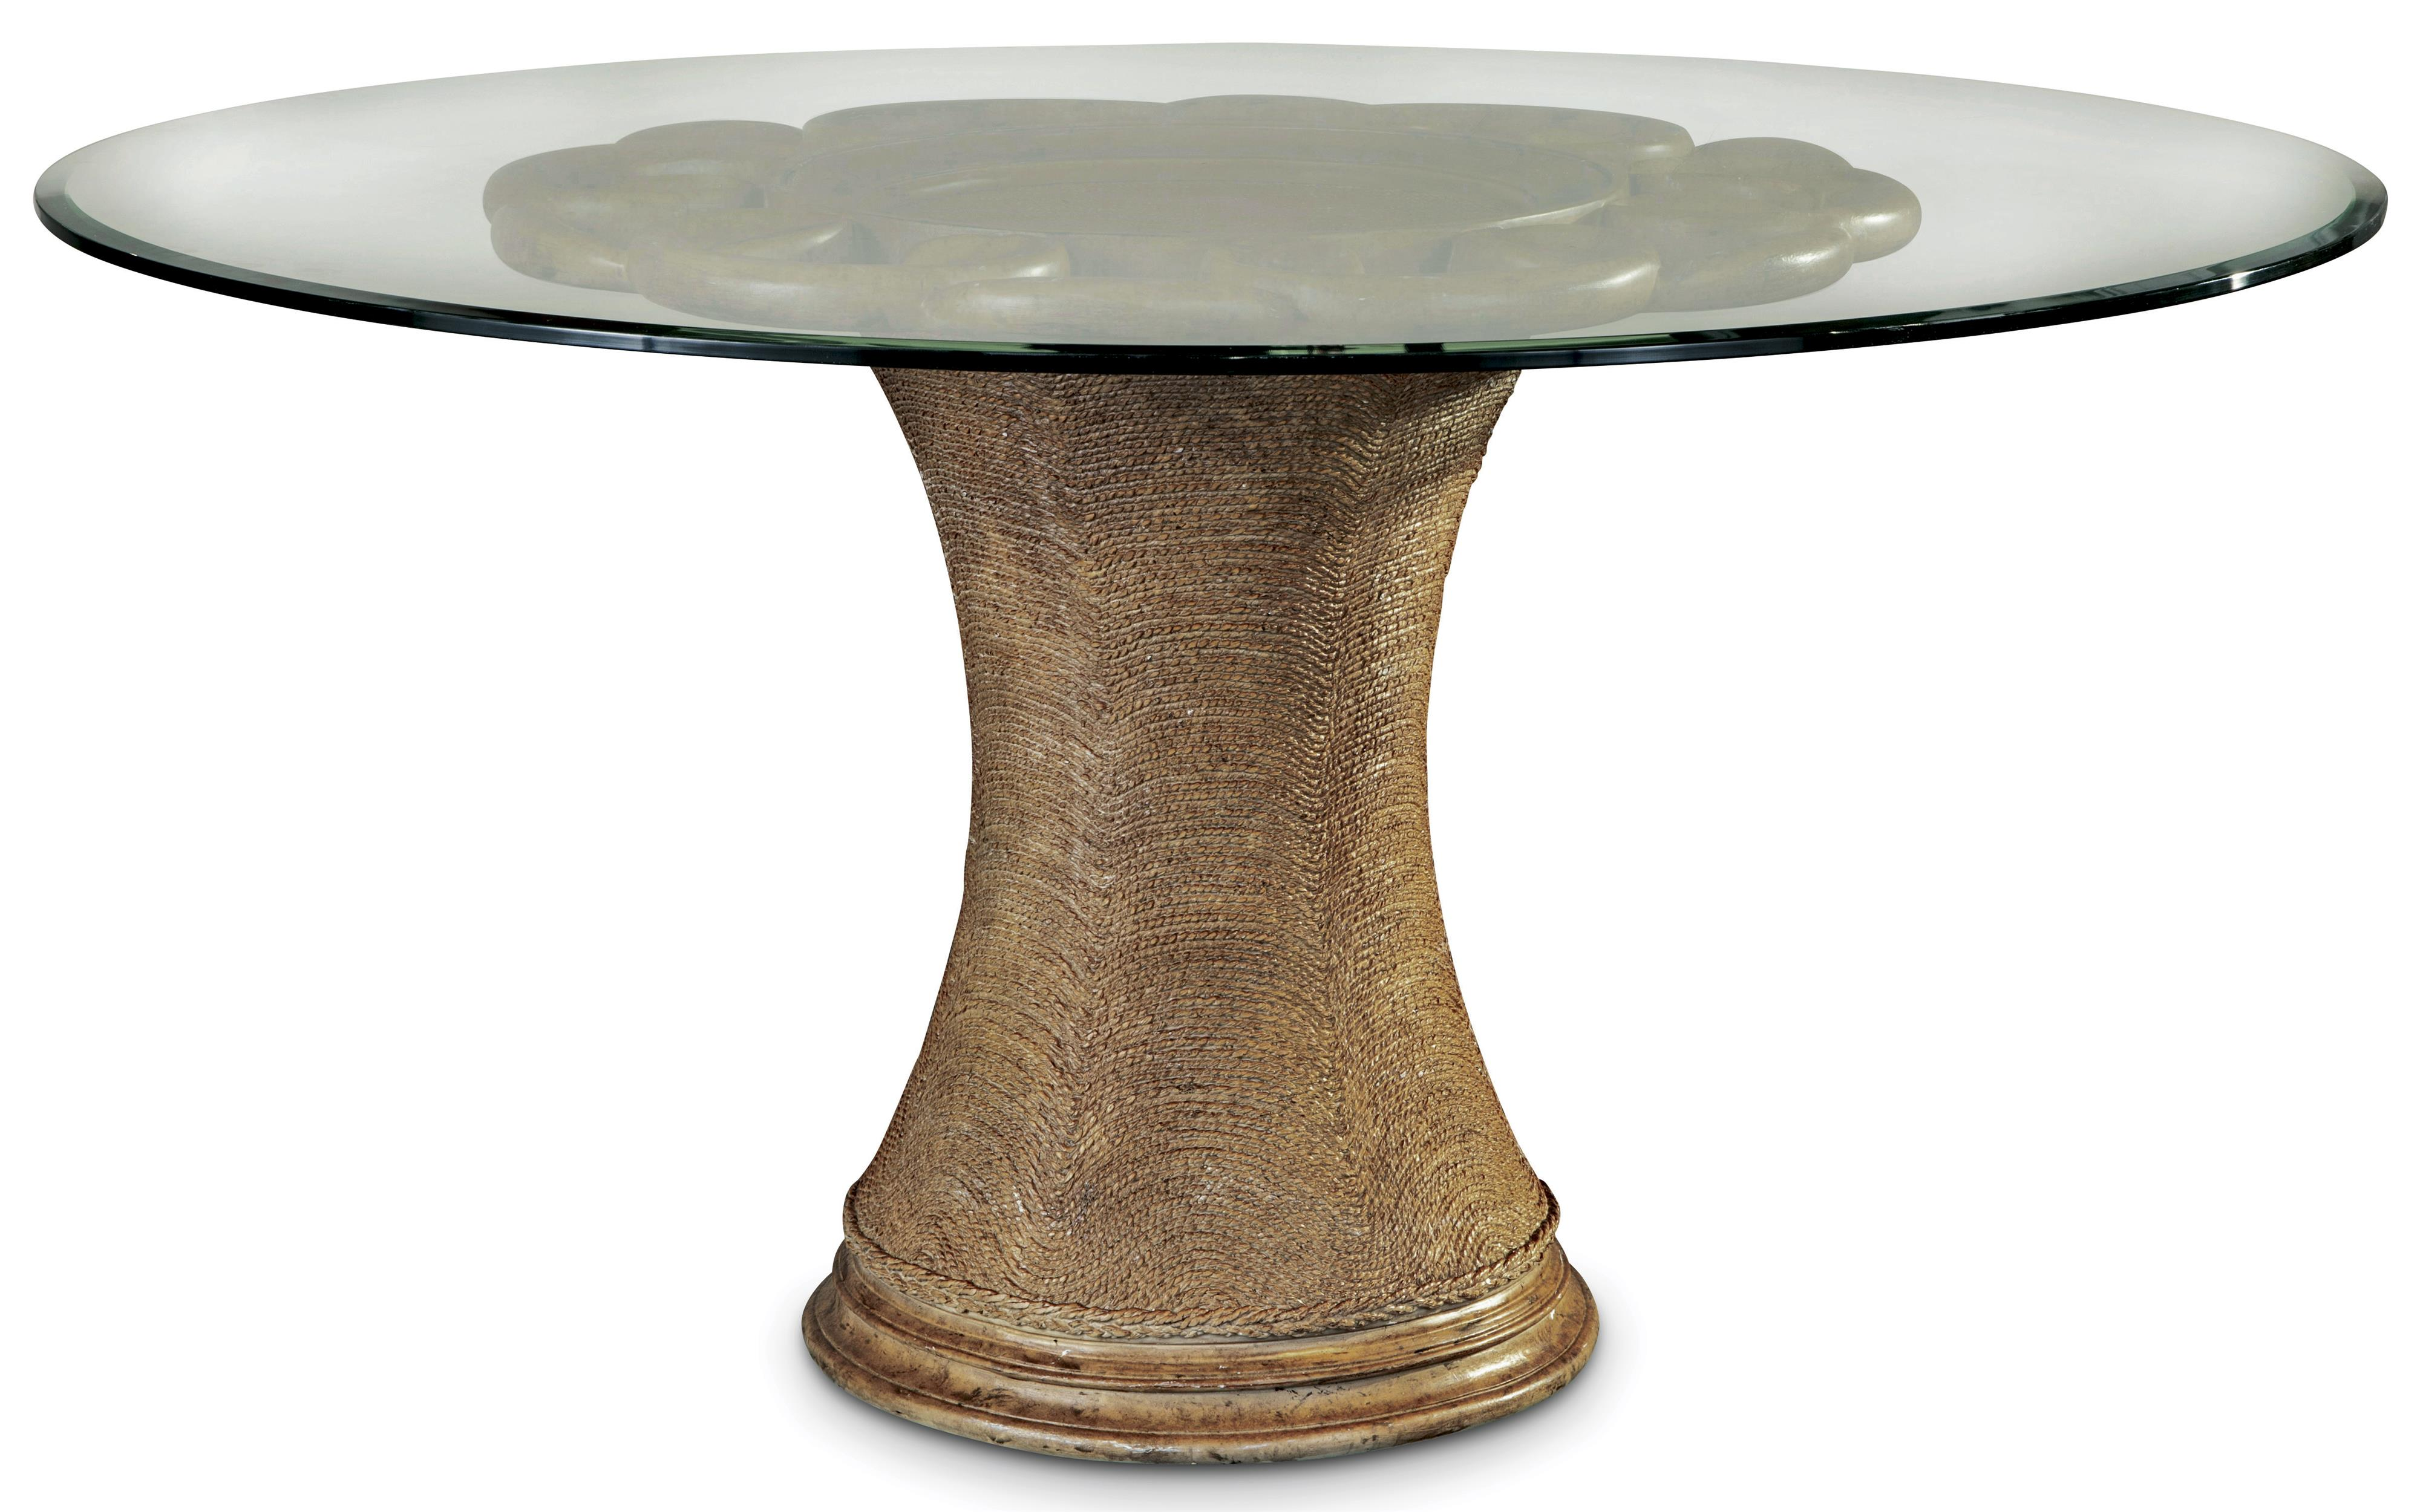 A.R.T. Furniture Inc Pavilion 54 Inch Round Dining Table - Item Number: 229224-260854